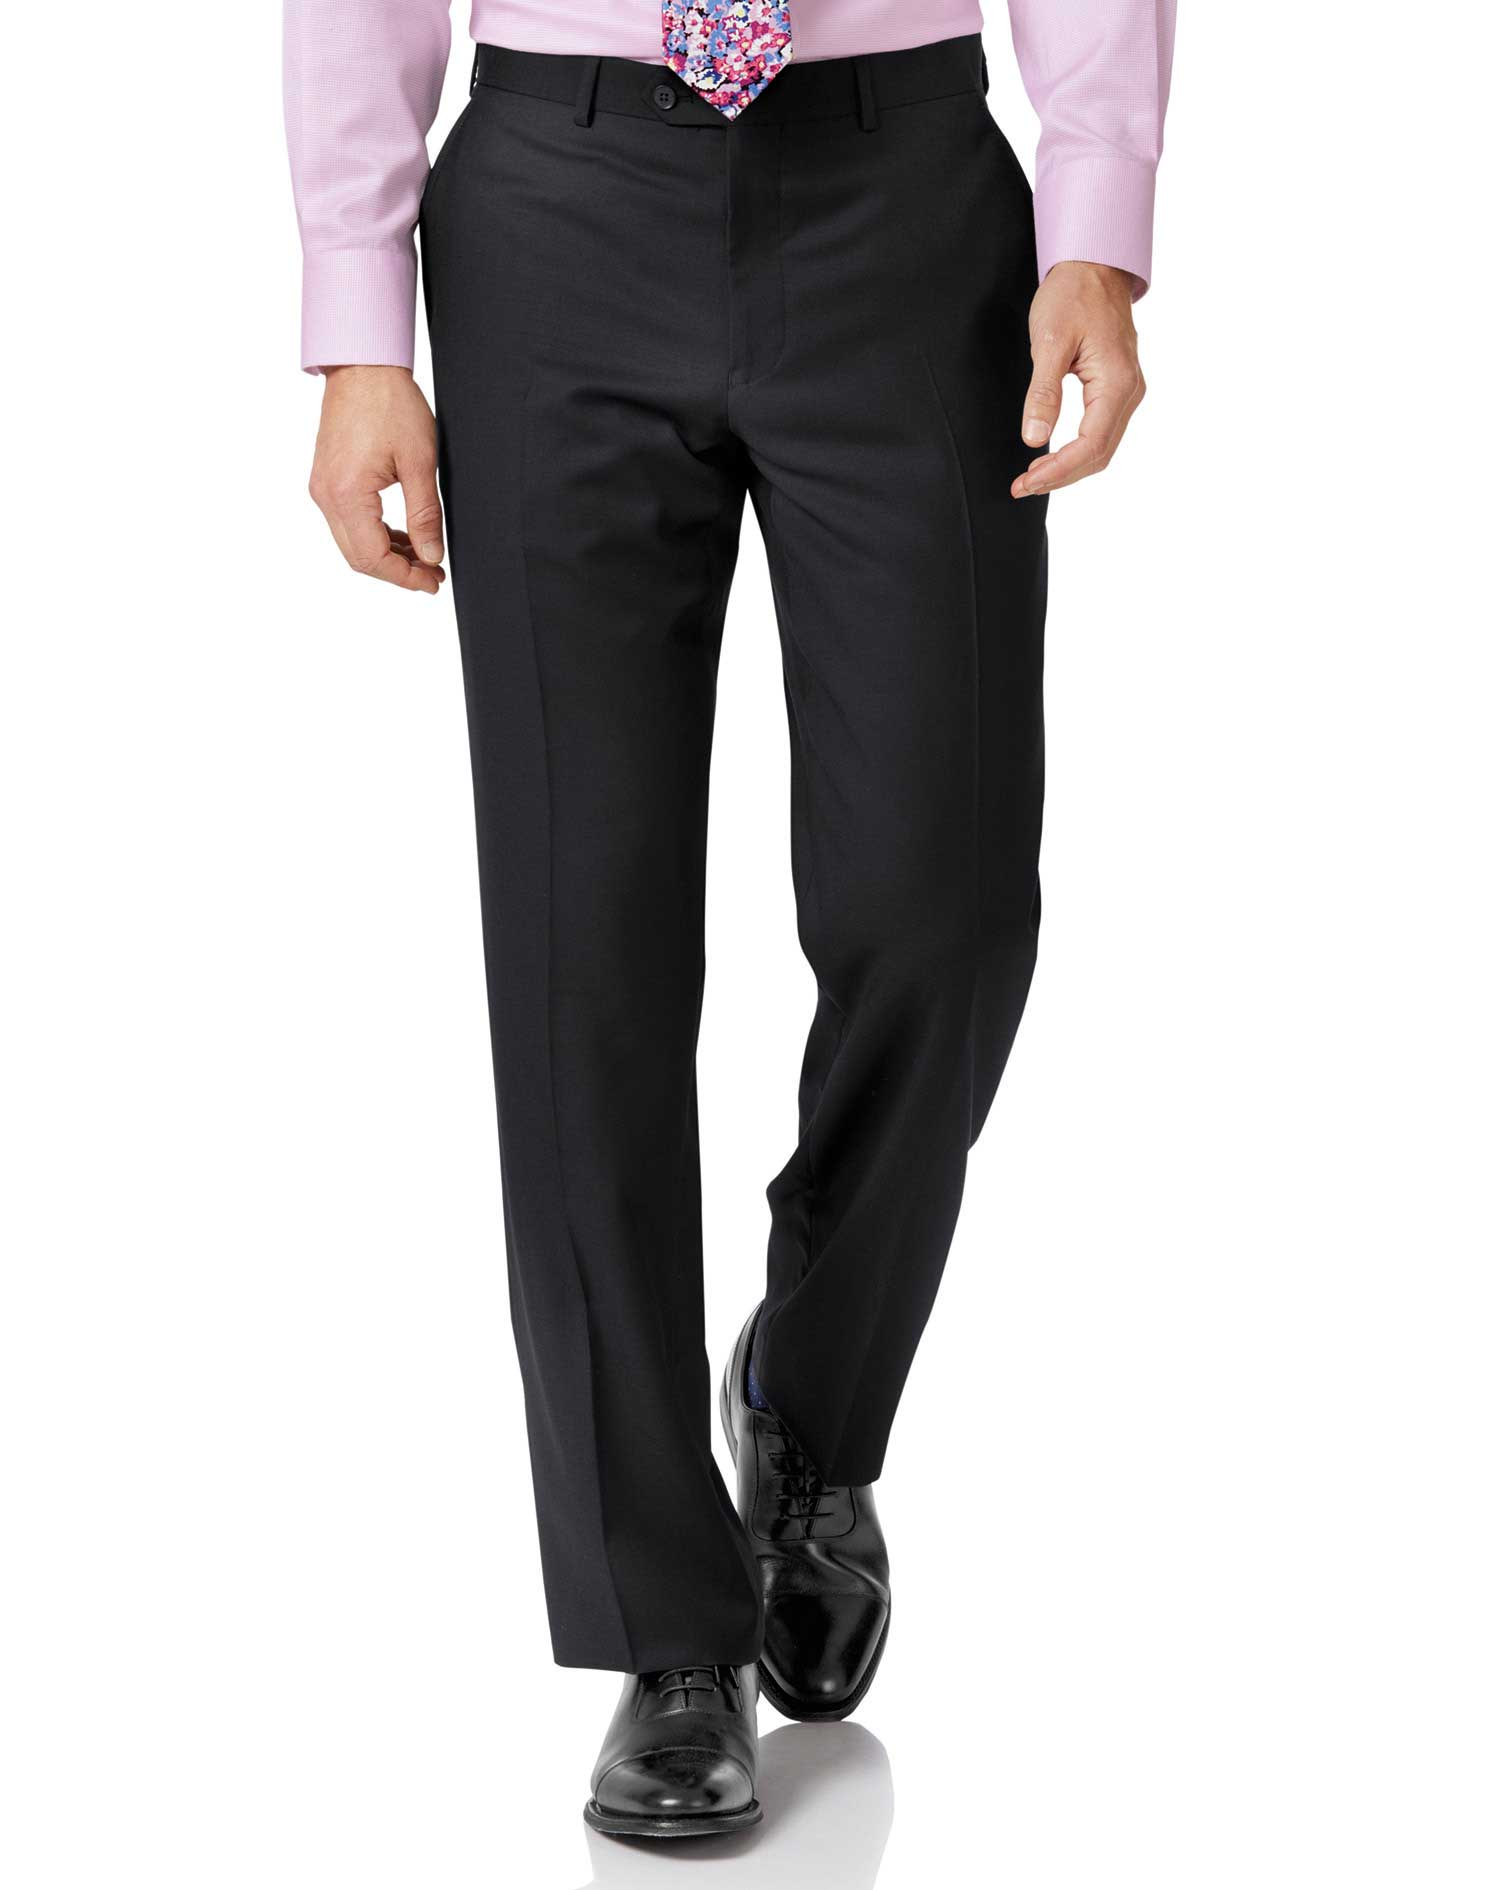 Black Classic Fit Twill Business Suit Trousers Size W36 L32 by Charles Tyrwhitt